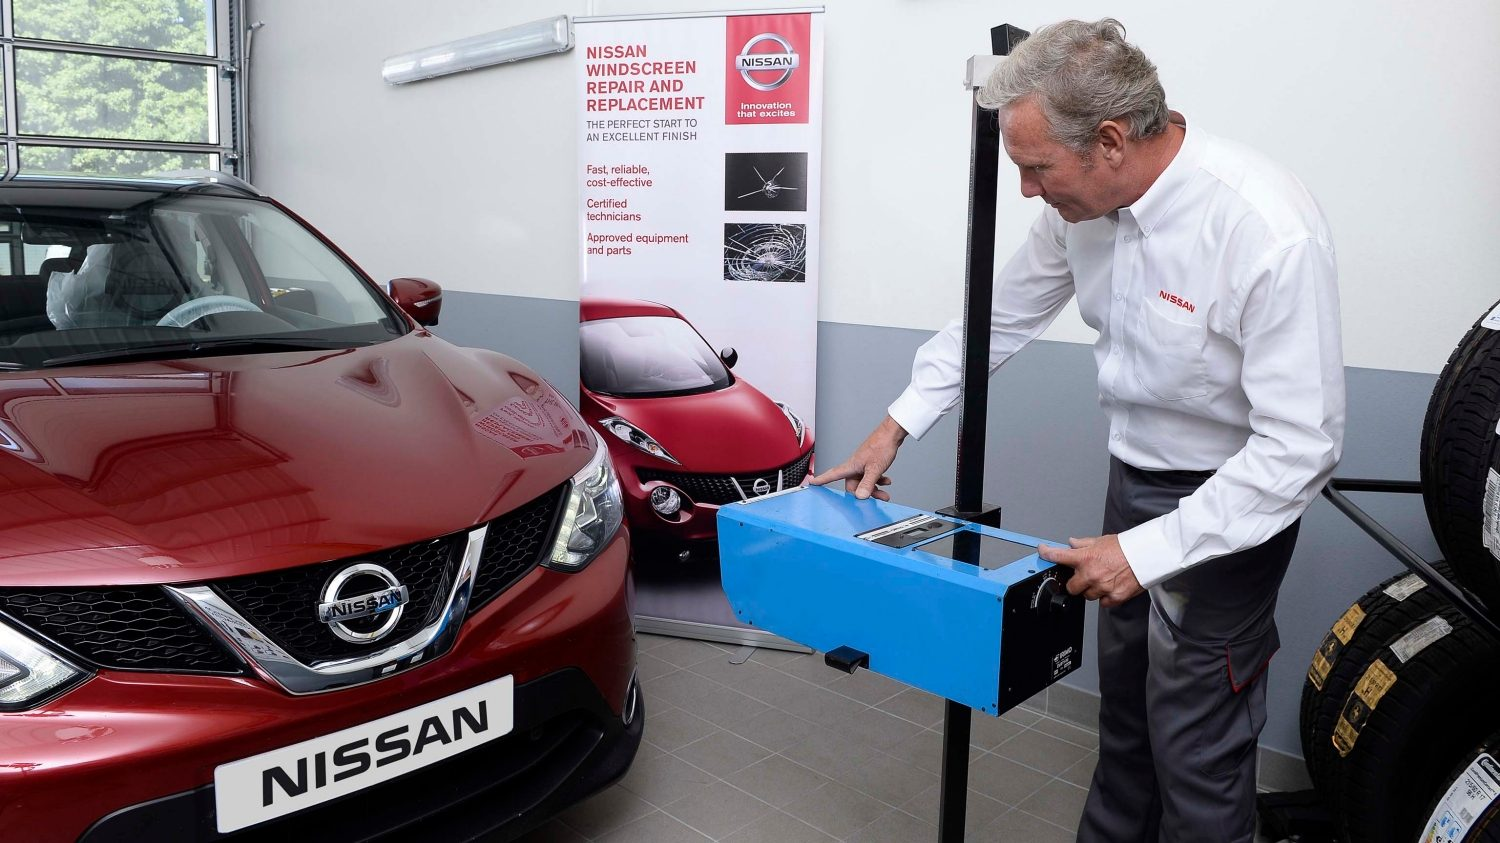 Nissan - Maintenance - Genuine parts